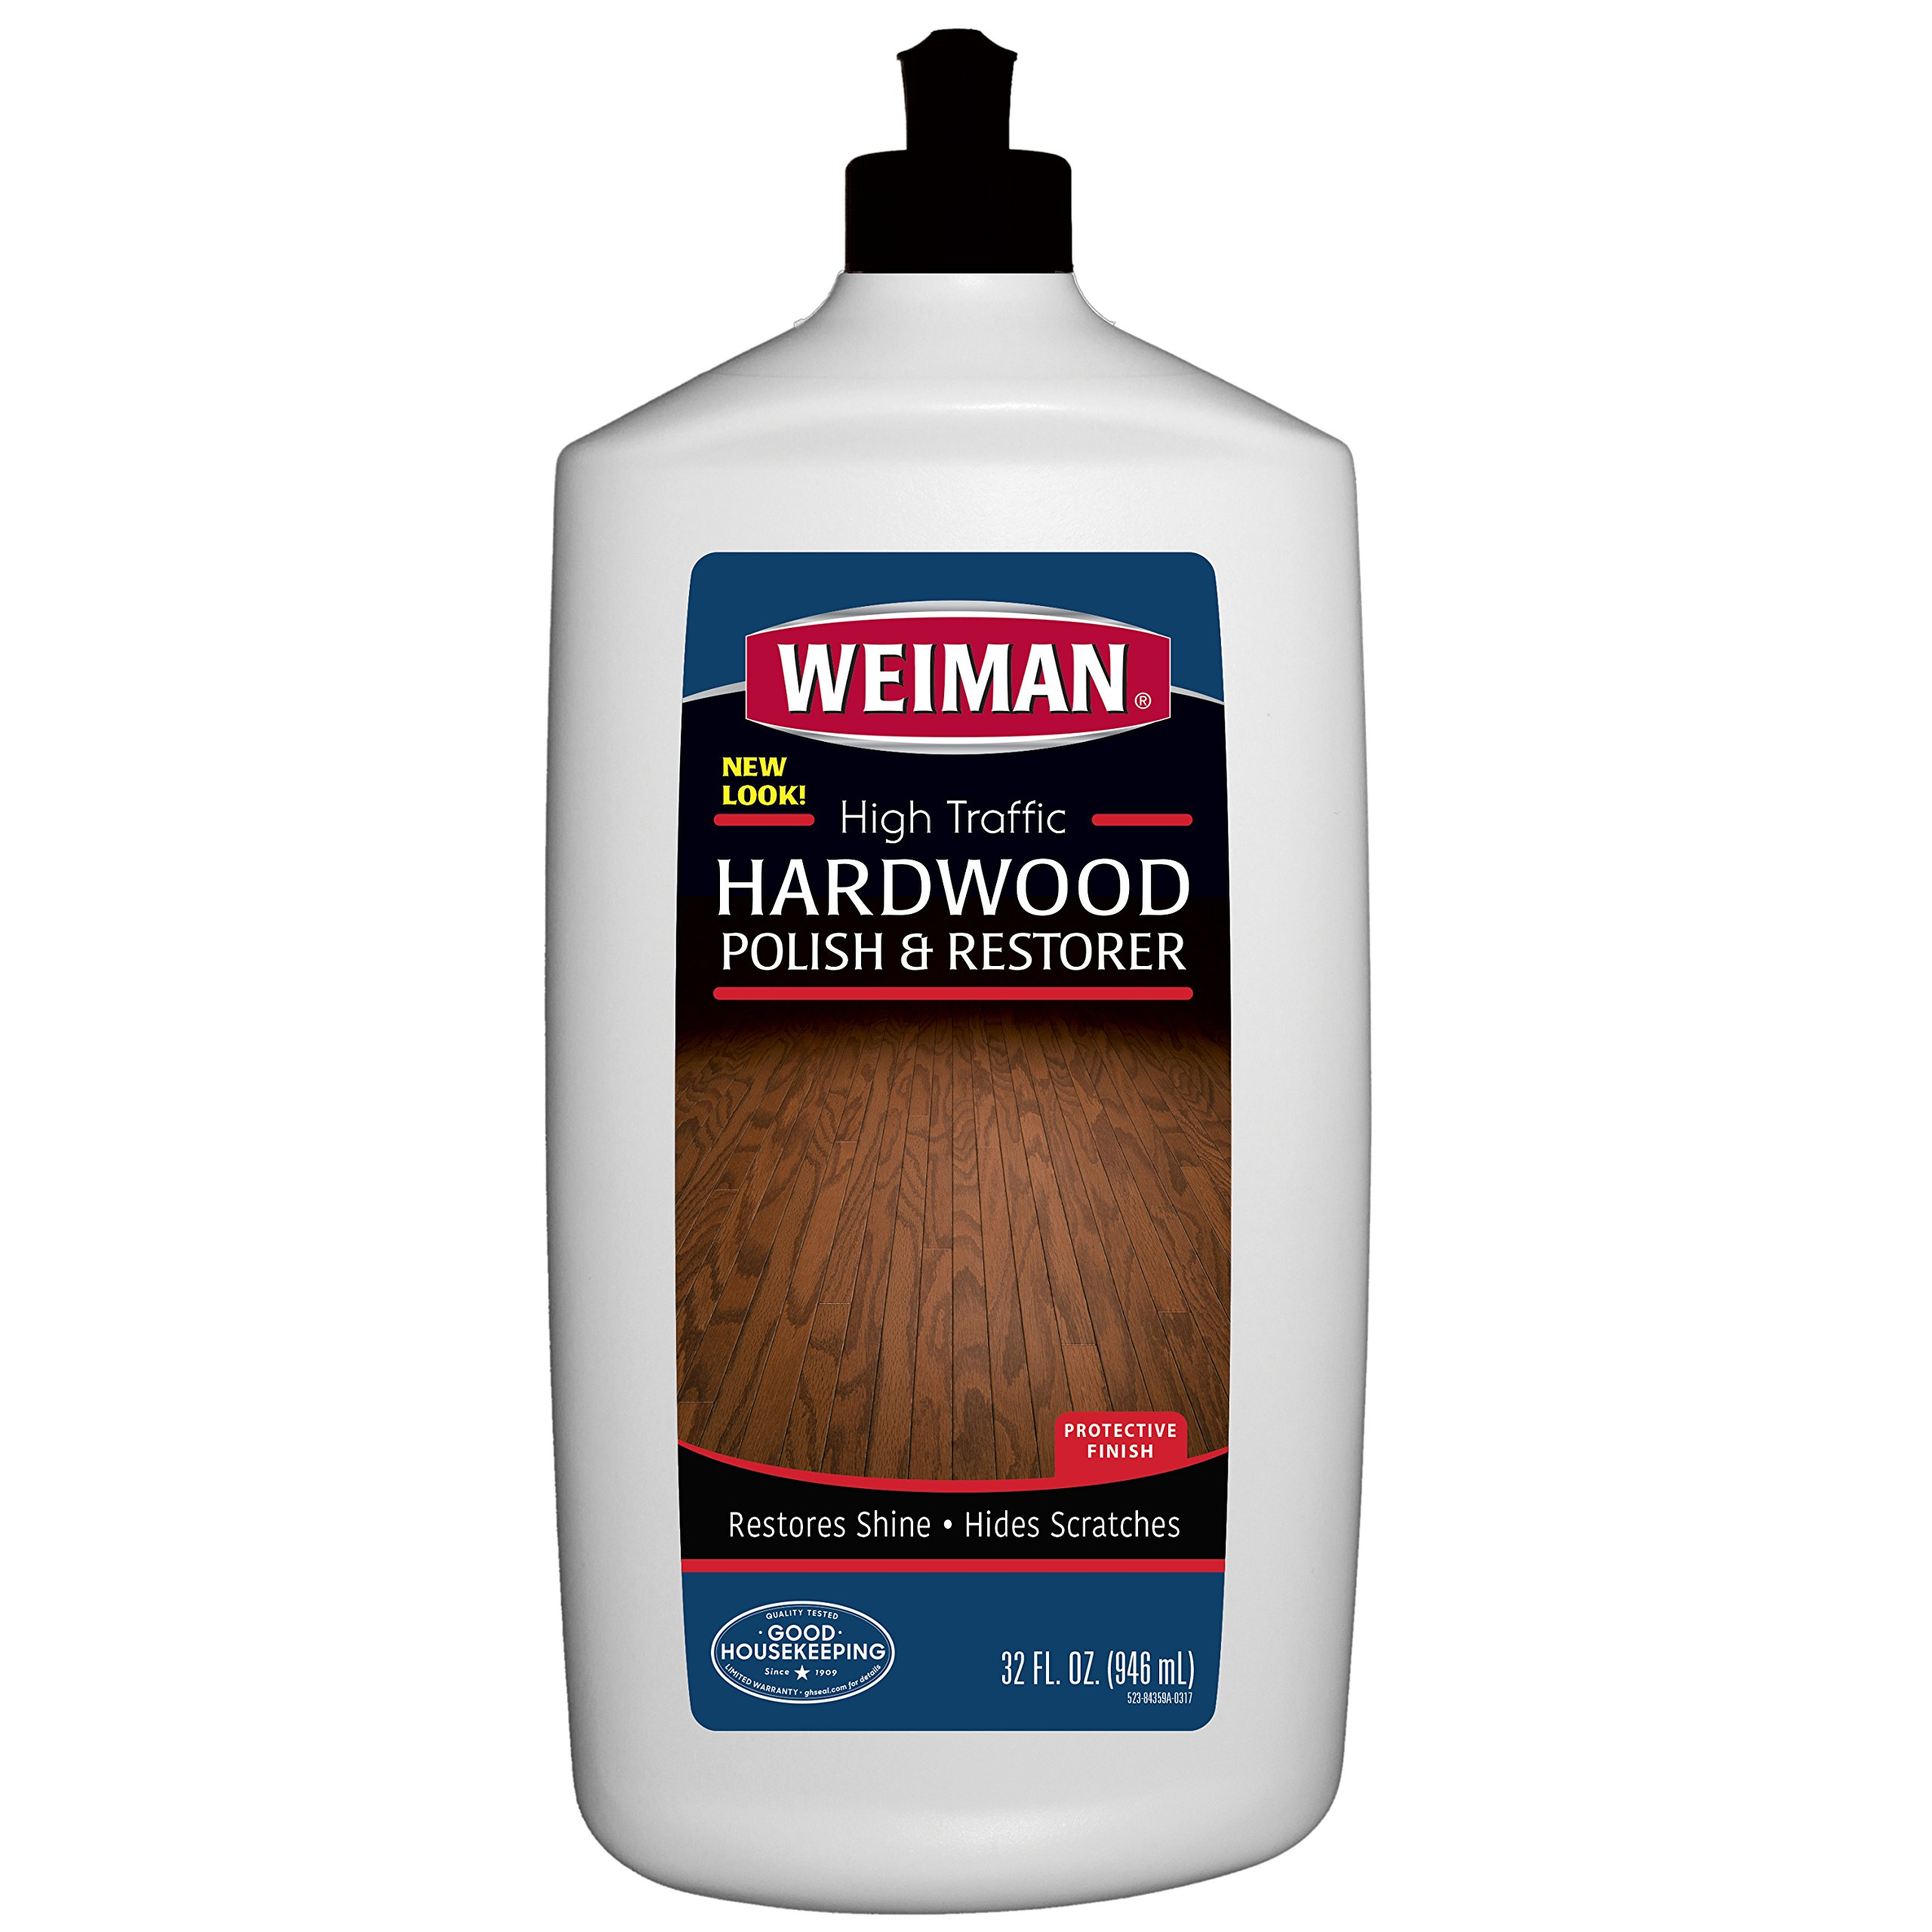 Weiman Wood Floor Polish and Restorer - 32 Ounce - High-Traffic Hardwood Floor, Natural Shine, Removes Scratches, Leaves Protective Layer by Weiman